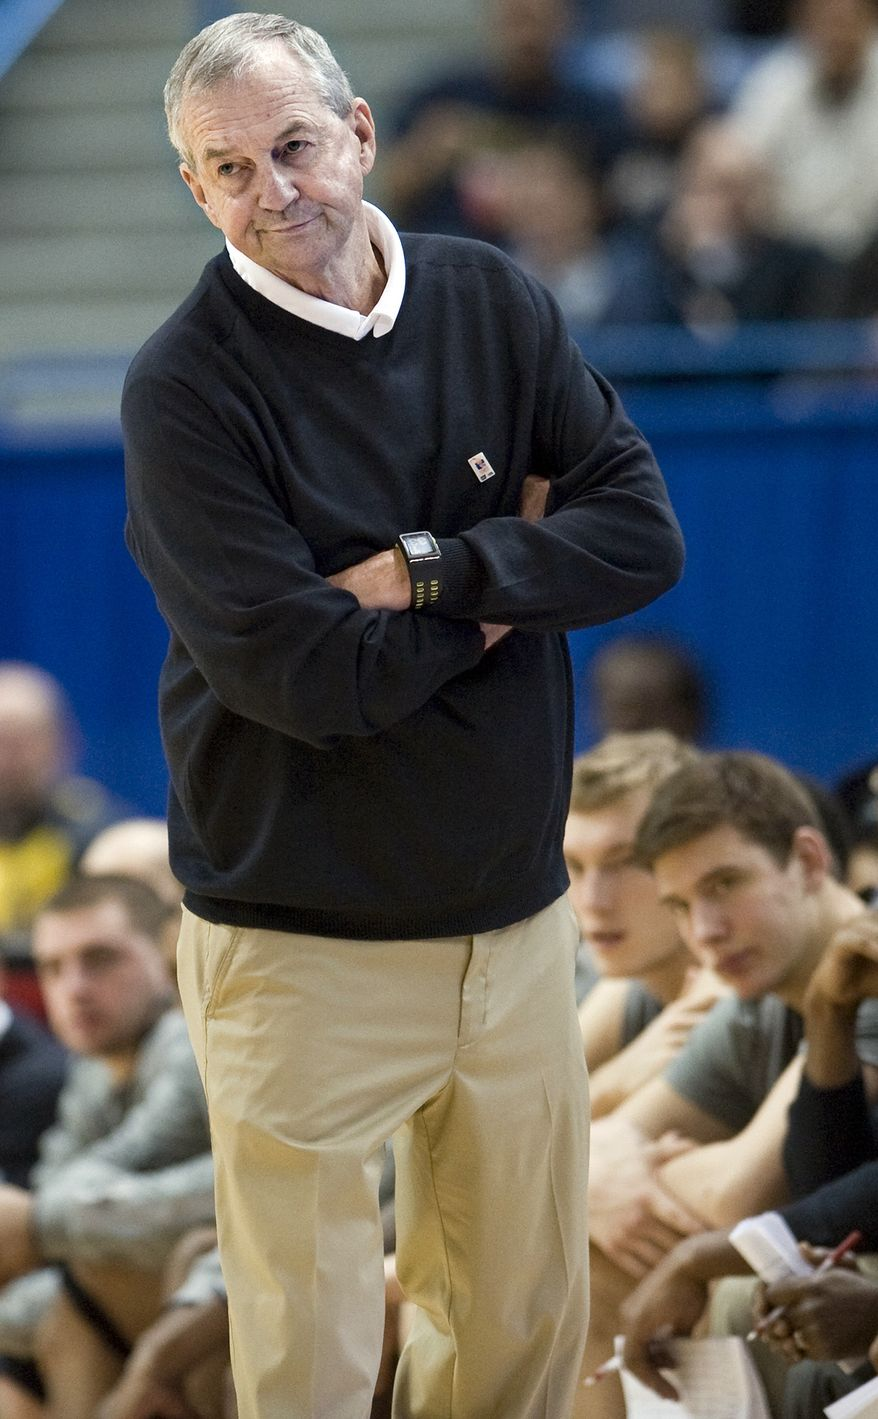 FILE - In this Jan. 29, 2012,, file photo, Connecticut head coach Jim Calhoun watches play in the second half of an NCAA college basketball game against Notre Dame in Hartford, Conn. Calhoun is taking an indefinite medical leave of absence, the school announced Friday, Feb. 3, 2012. The Hall of Fame coach, who turns 70 in May, has been suffering for several months from spinal stenosis, a lower back condition that causes him severe pain and hampers mobility, the school said Friday in a news release. (AP Photo/Jessica Hill, File)